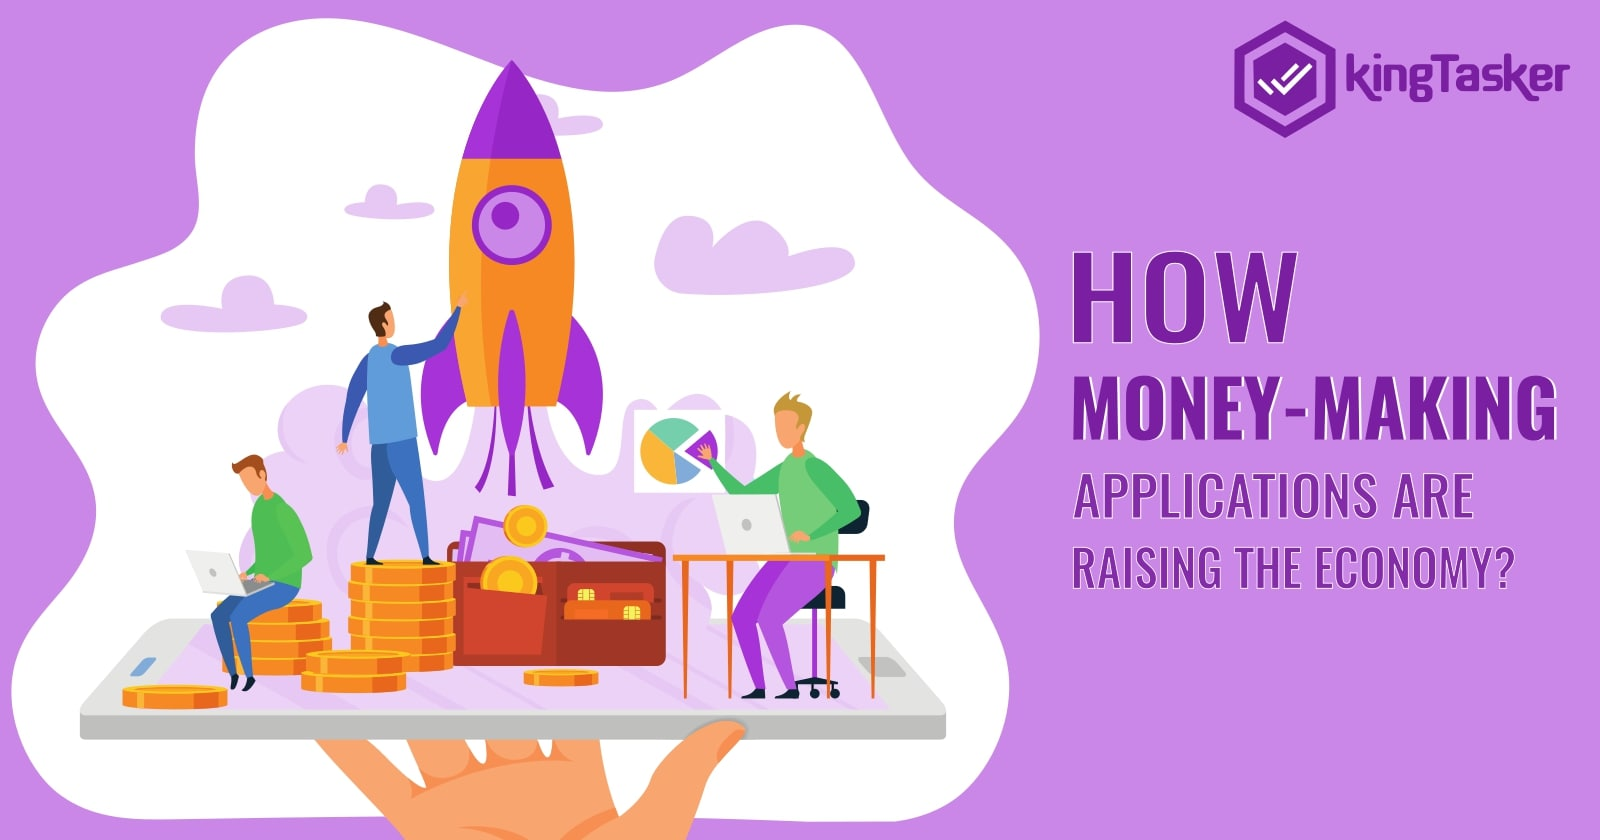 How Money-Making Applications Are Raising The Economy?